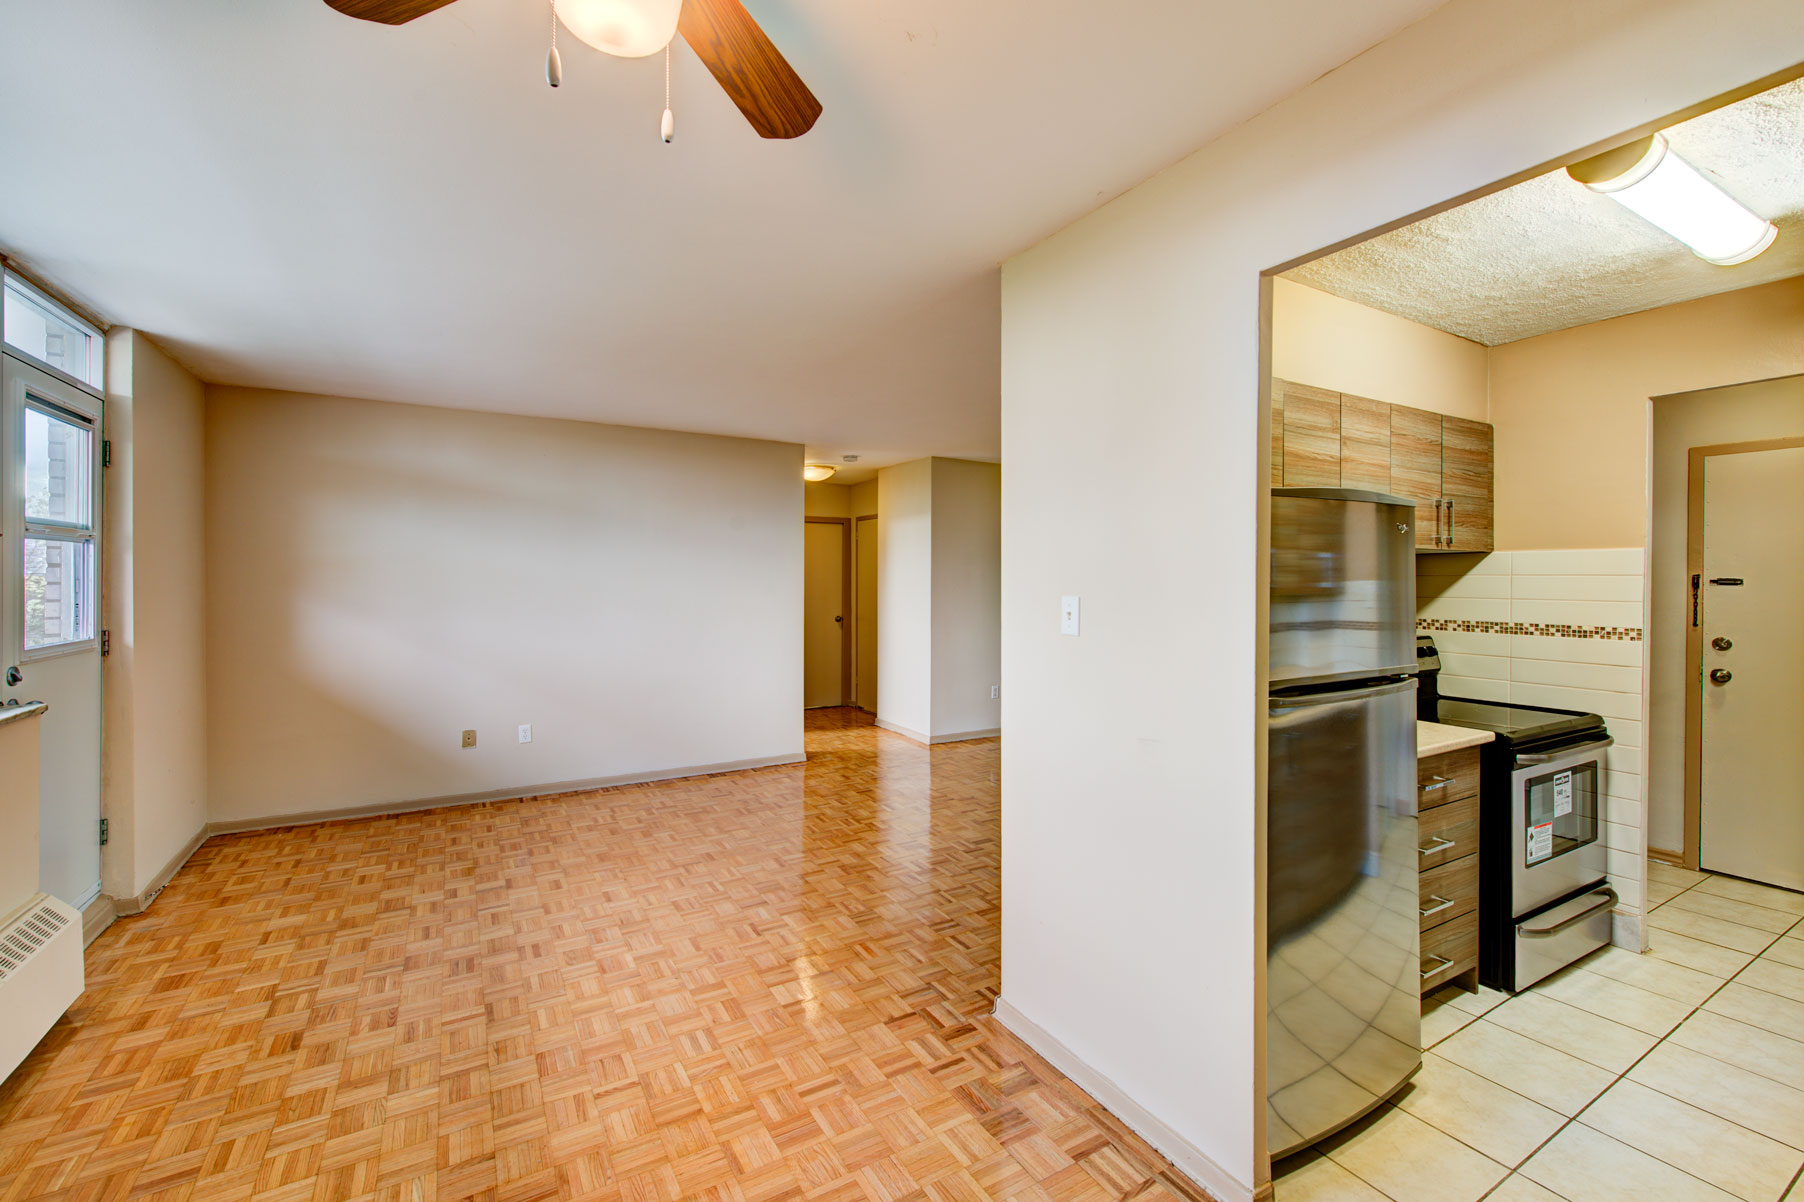 3 Bedroom Apartment Mississauga 28 Images 121 Agnes St Apartments Mississauga On Walk Score